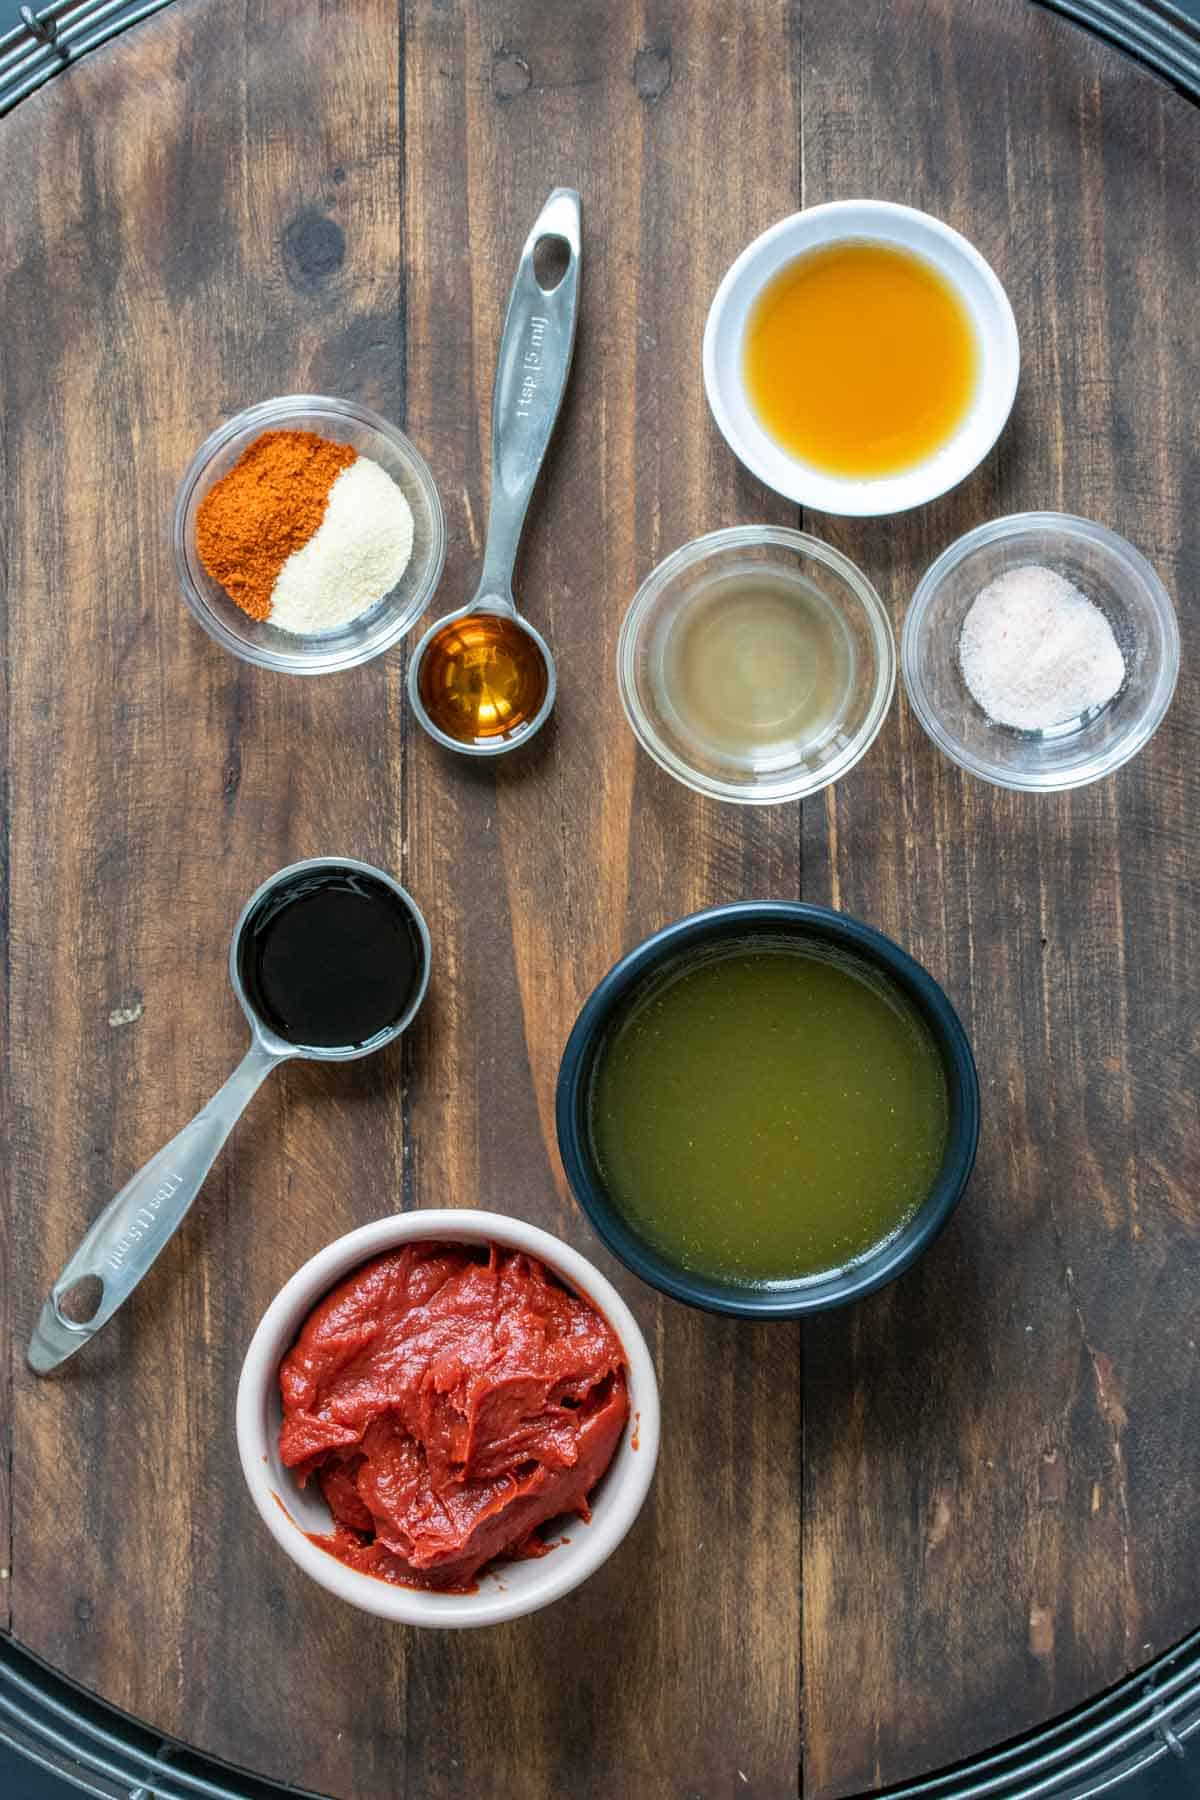 Different color and sized bowls with ingredients to make homemade bbq sauce